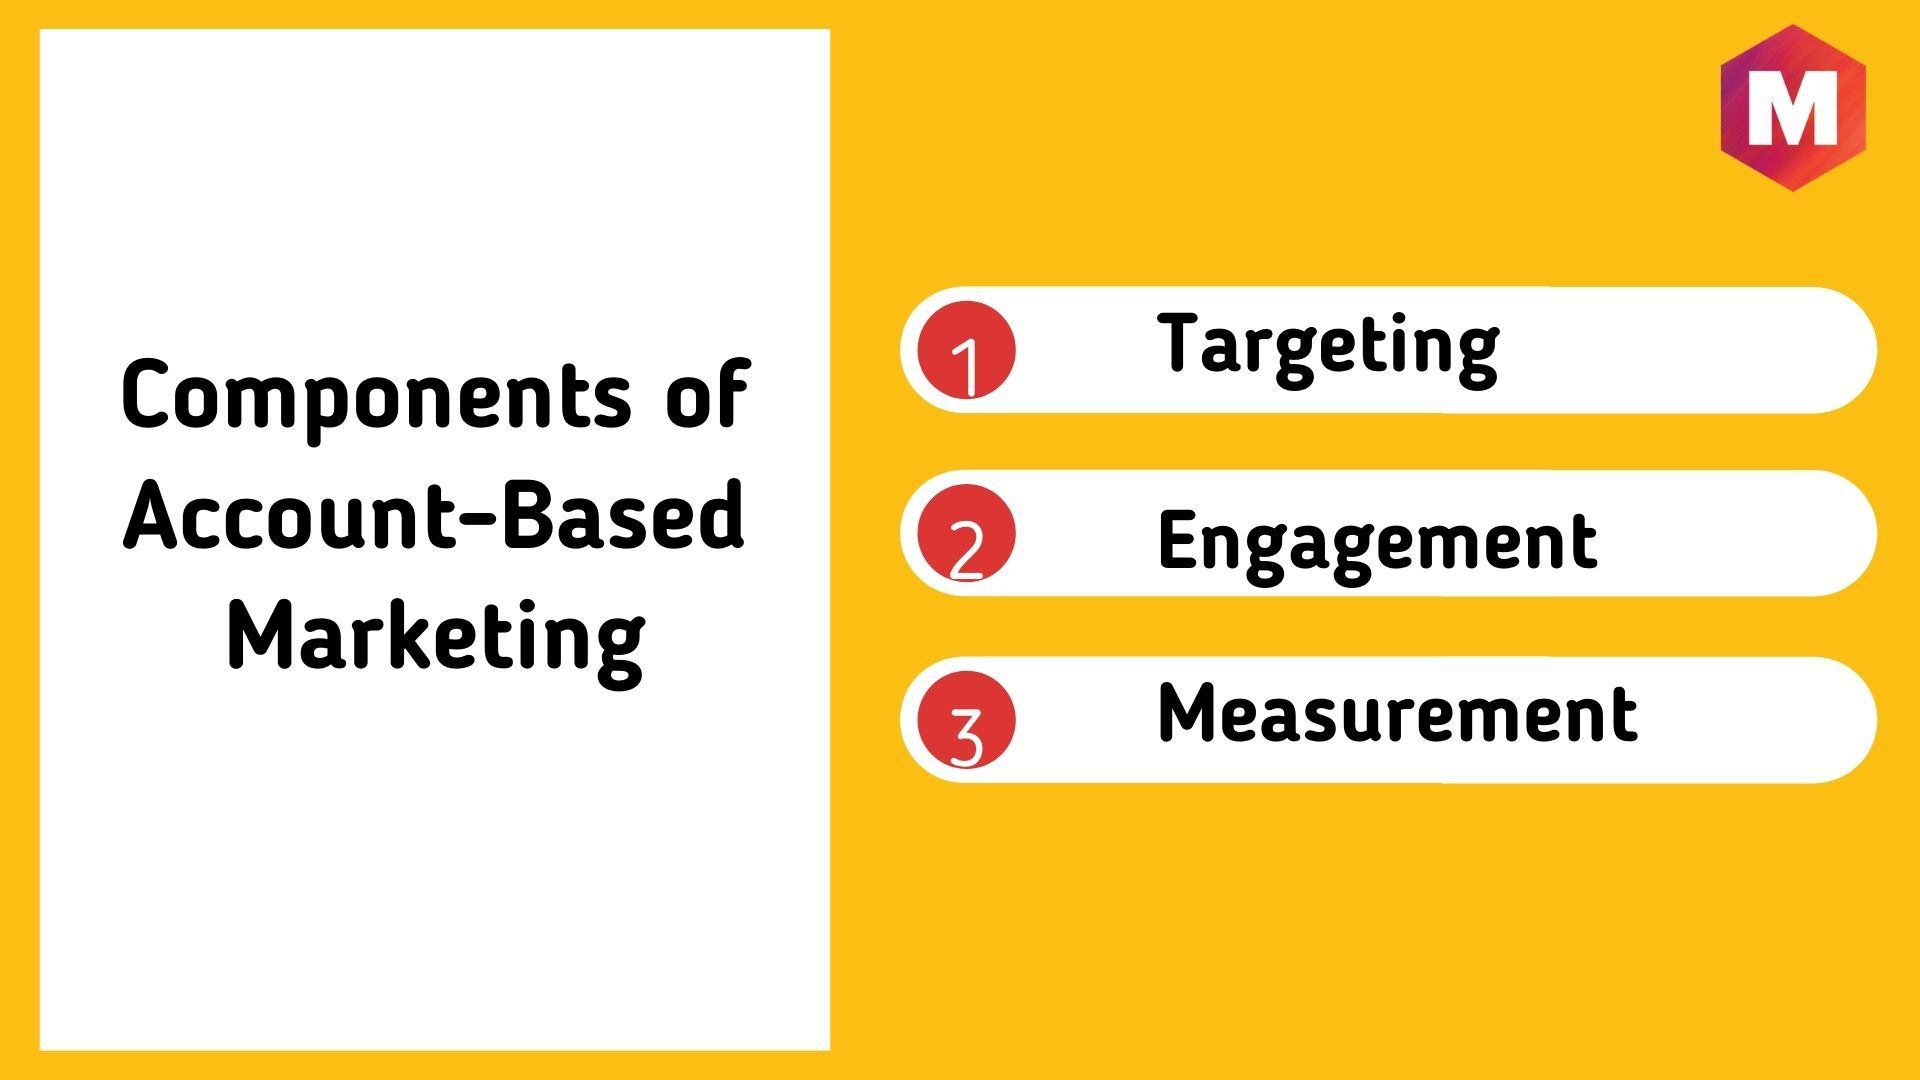 Components of Account-Based Marketing